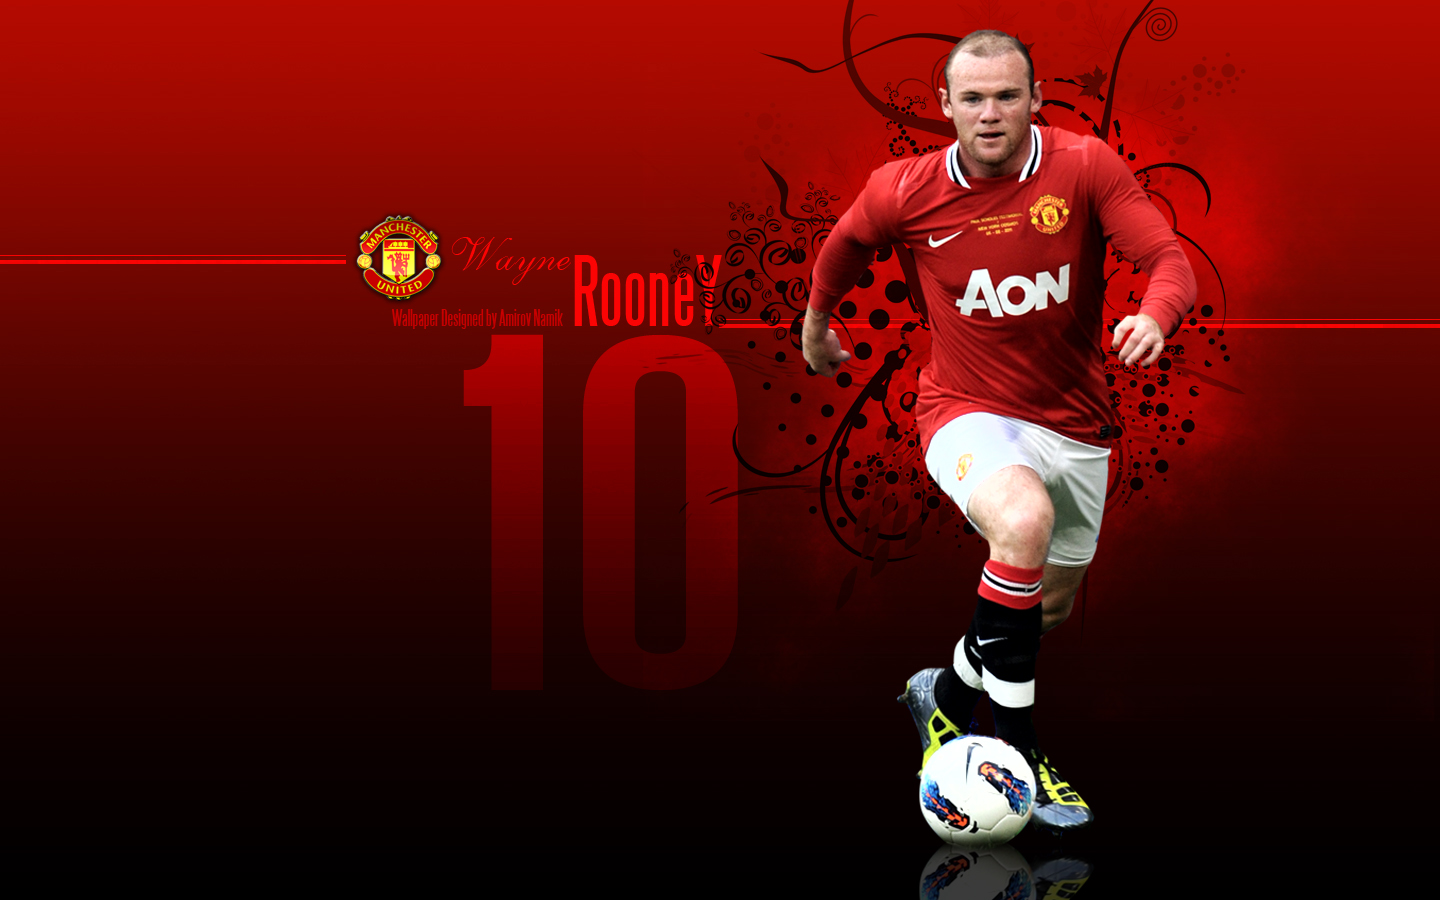 HD Wallpaper rooney